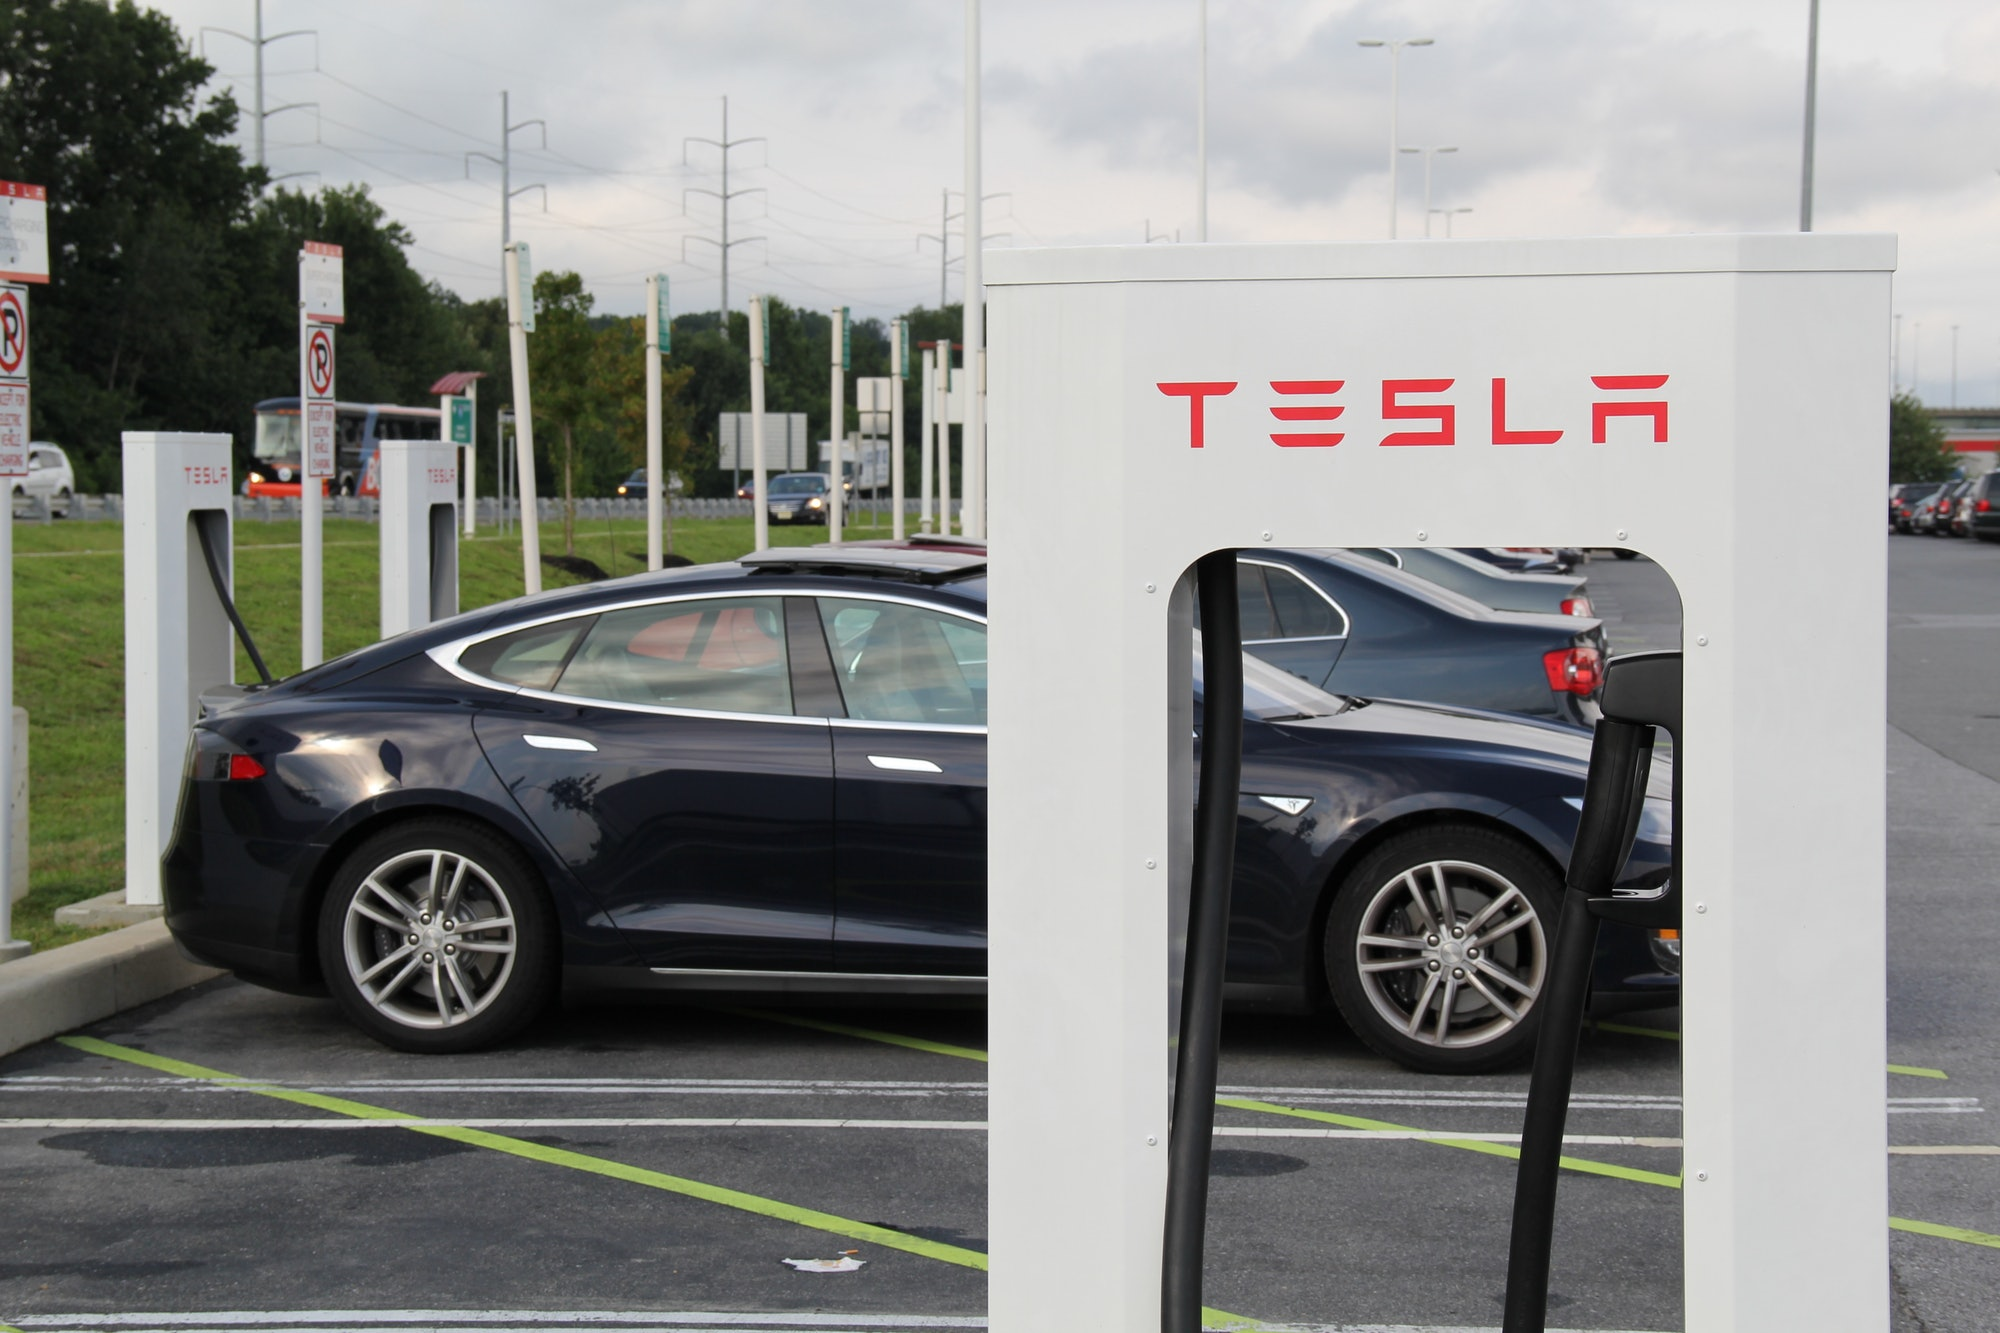 A Tesla supercharger in action.